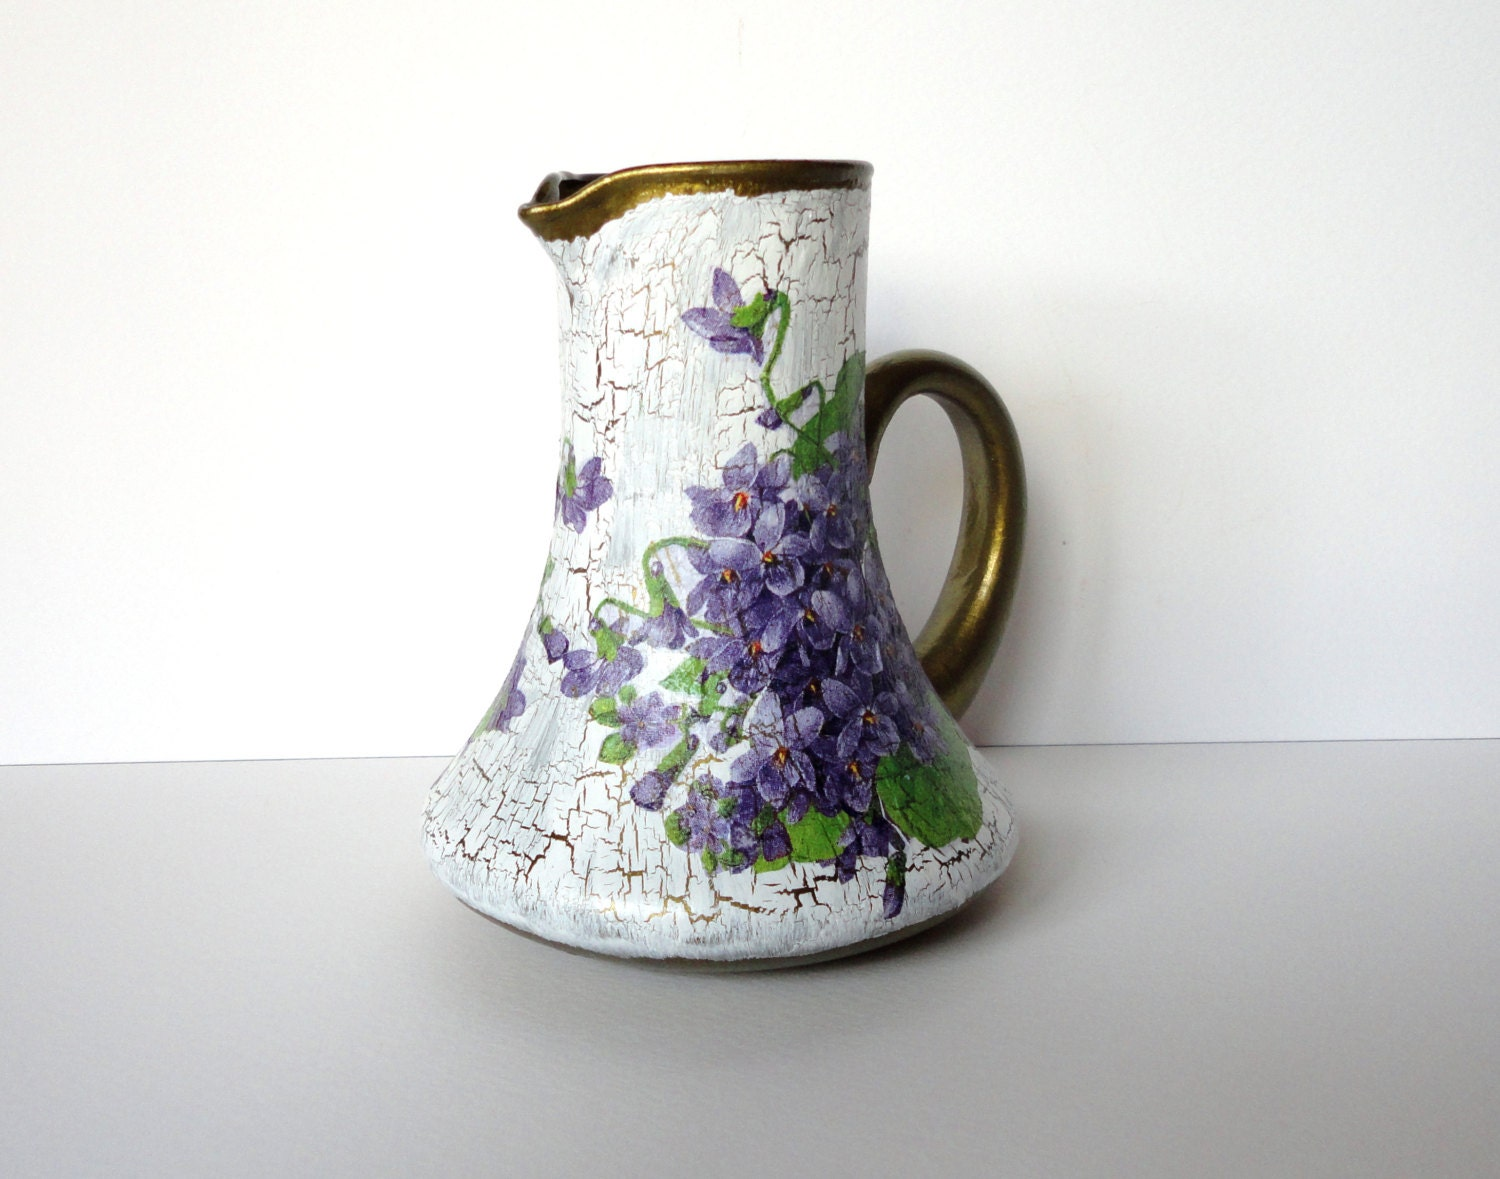 Glass jug Small vase Retro vase Victorian  vase Decoupage vase Colorful jug Vase with violets Decoupage jug - decorartarina